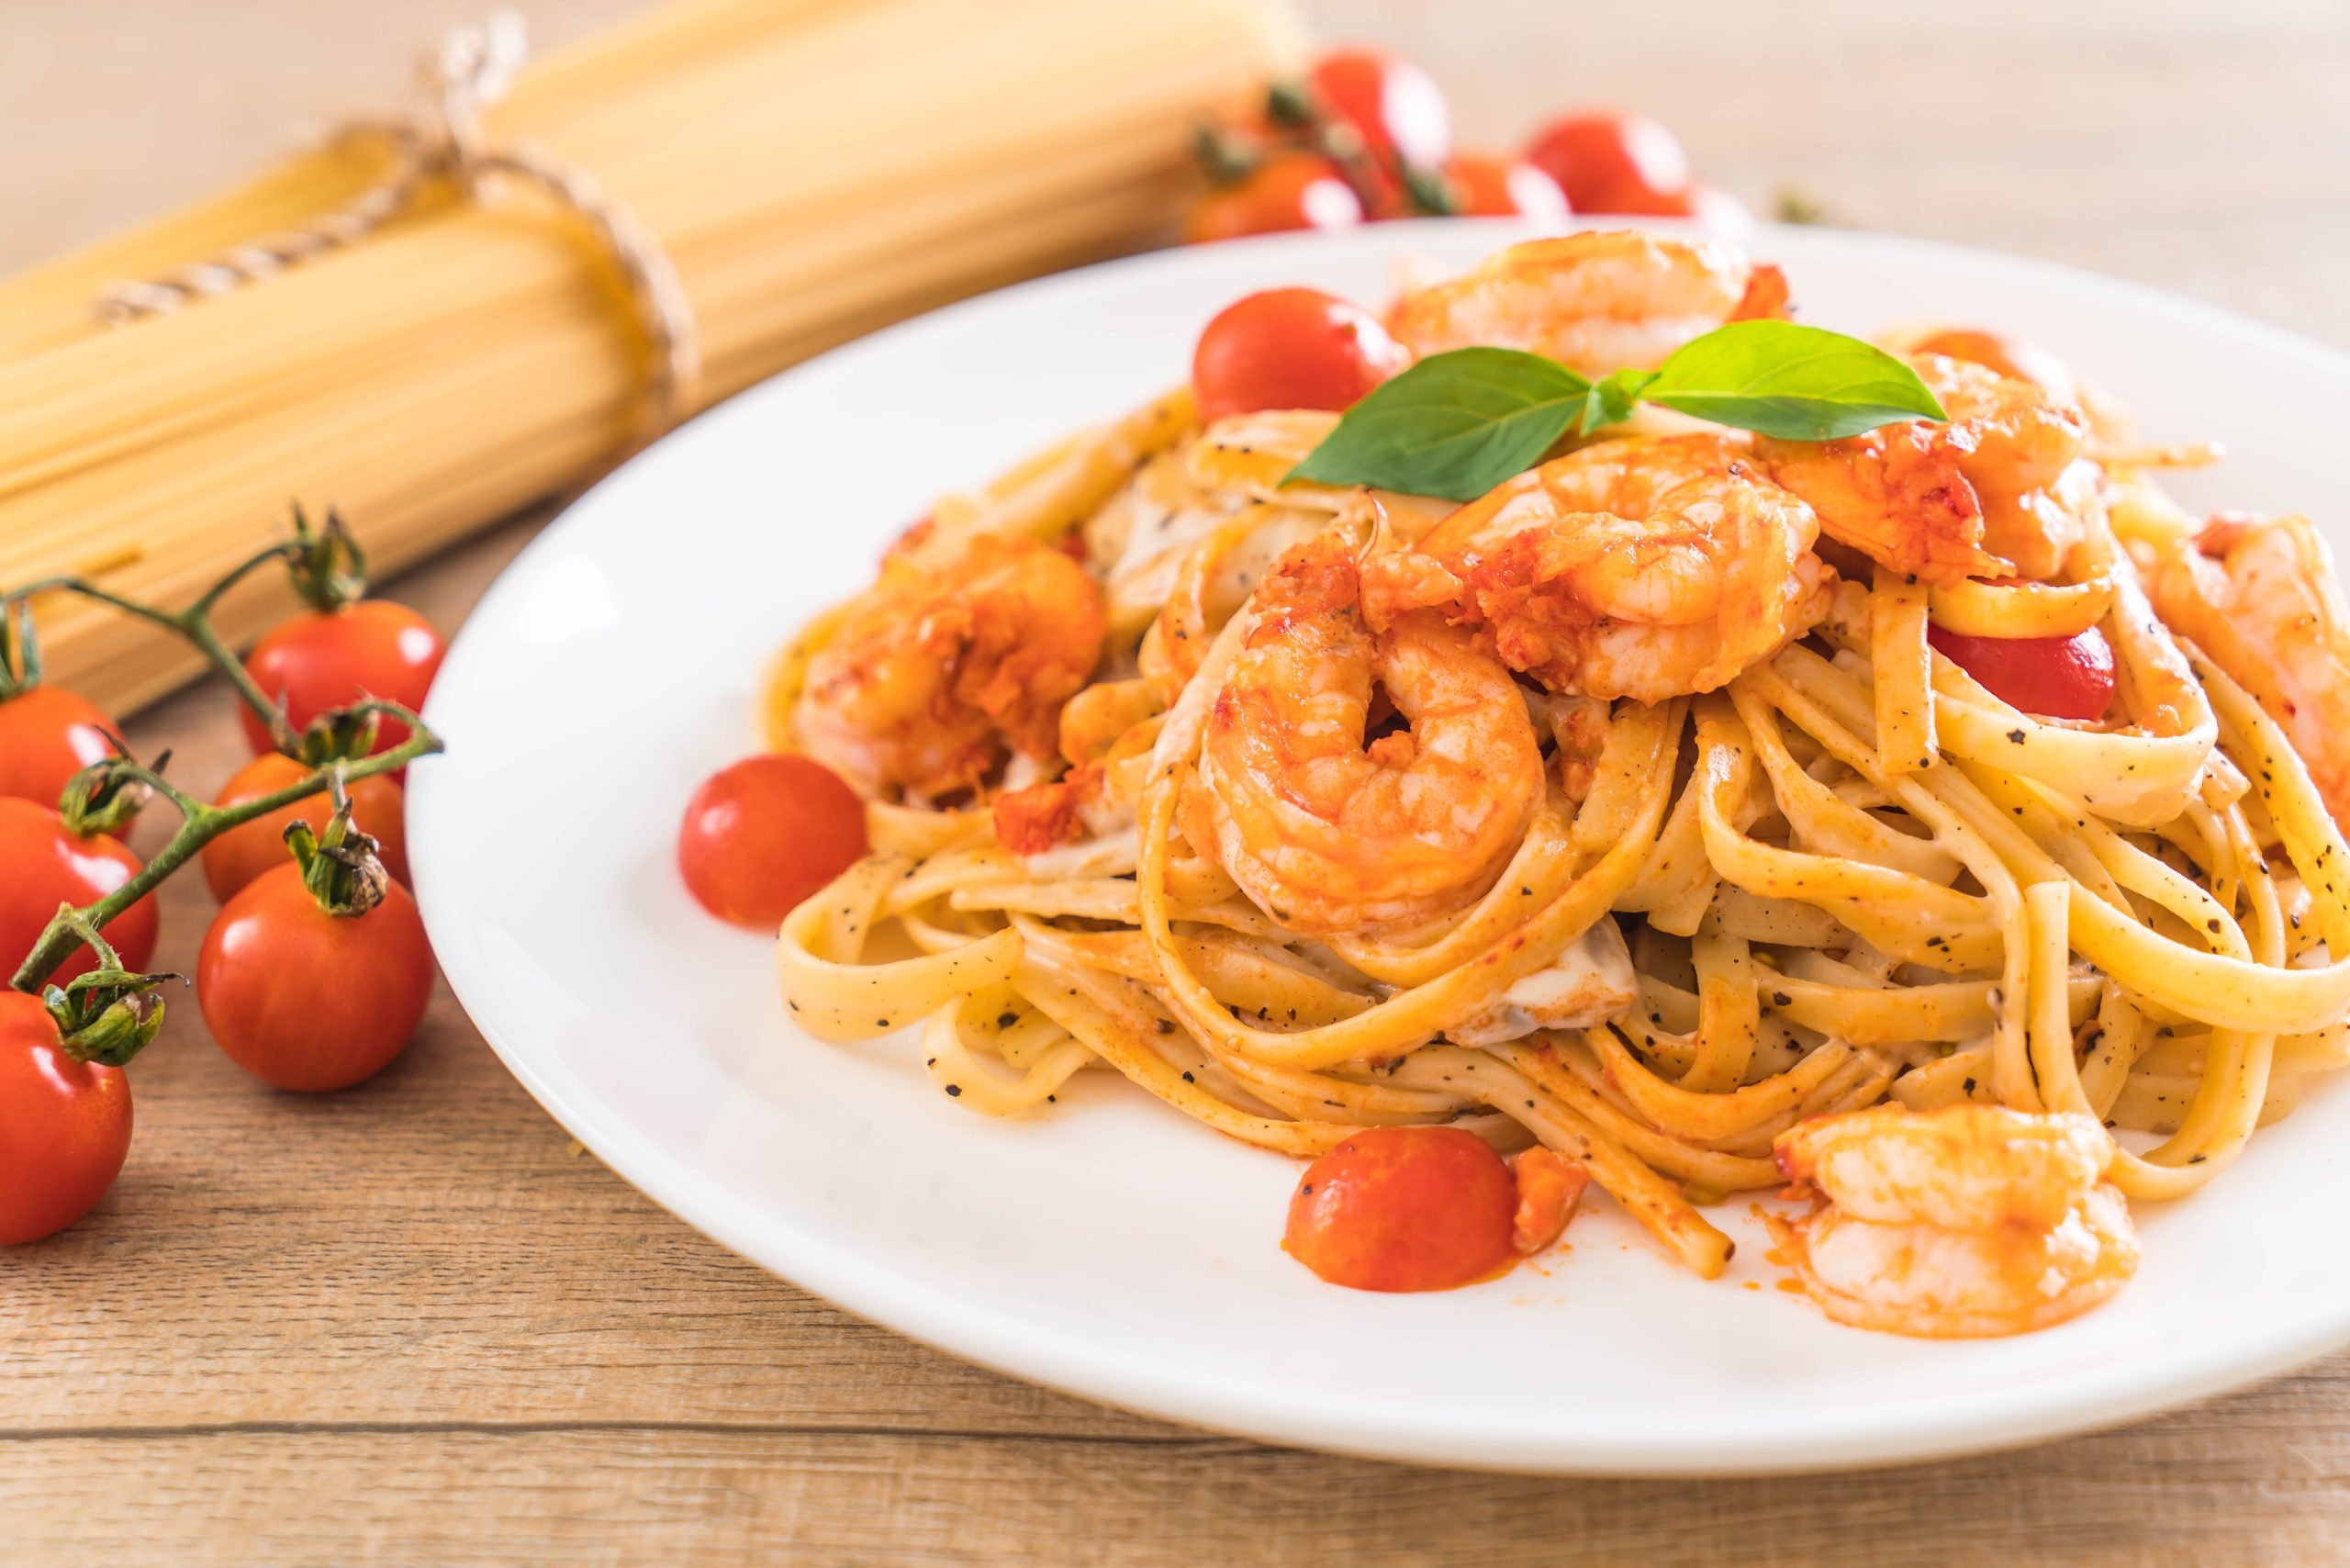 Experience The Flavour Of Traditional Pasta On The Milan Food Tasting Tour